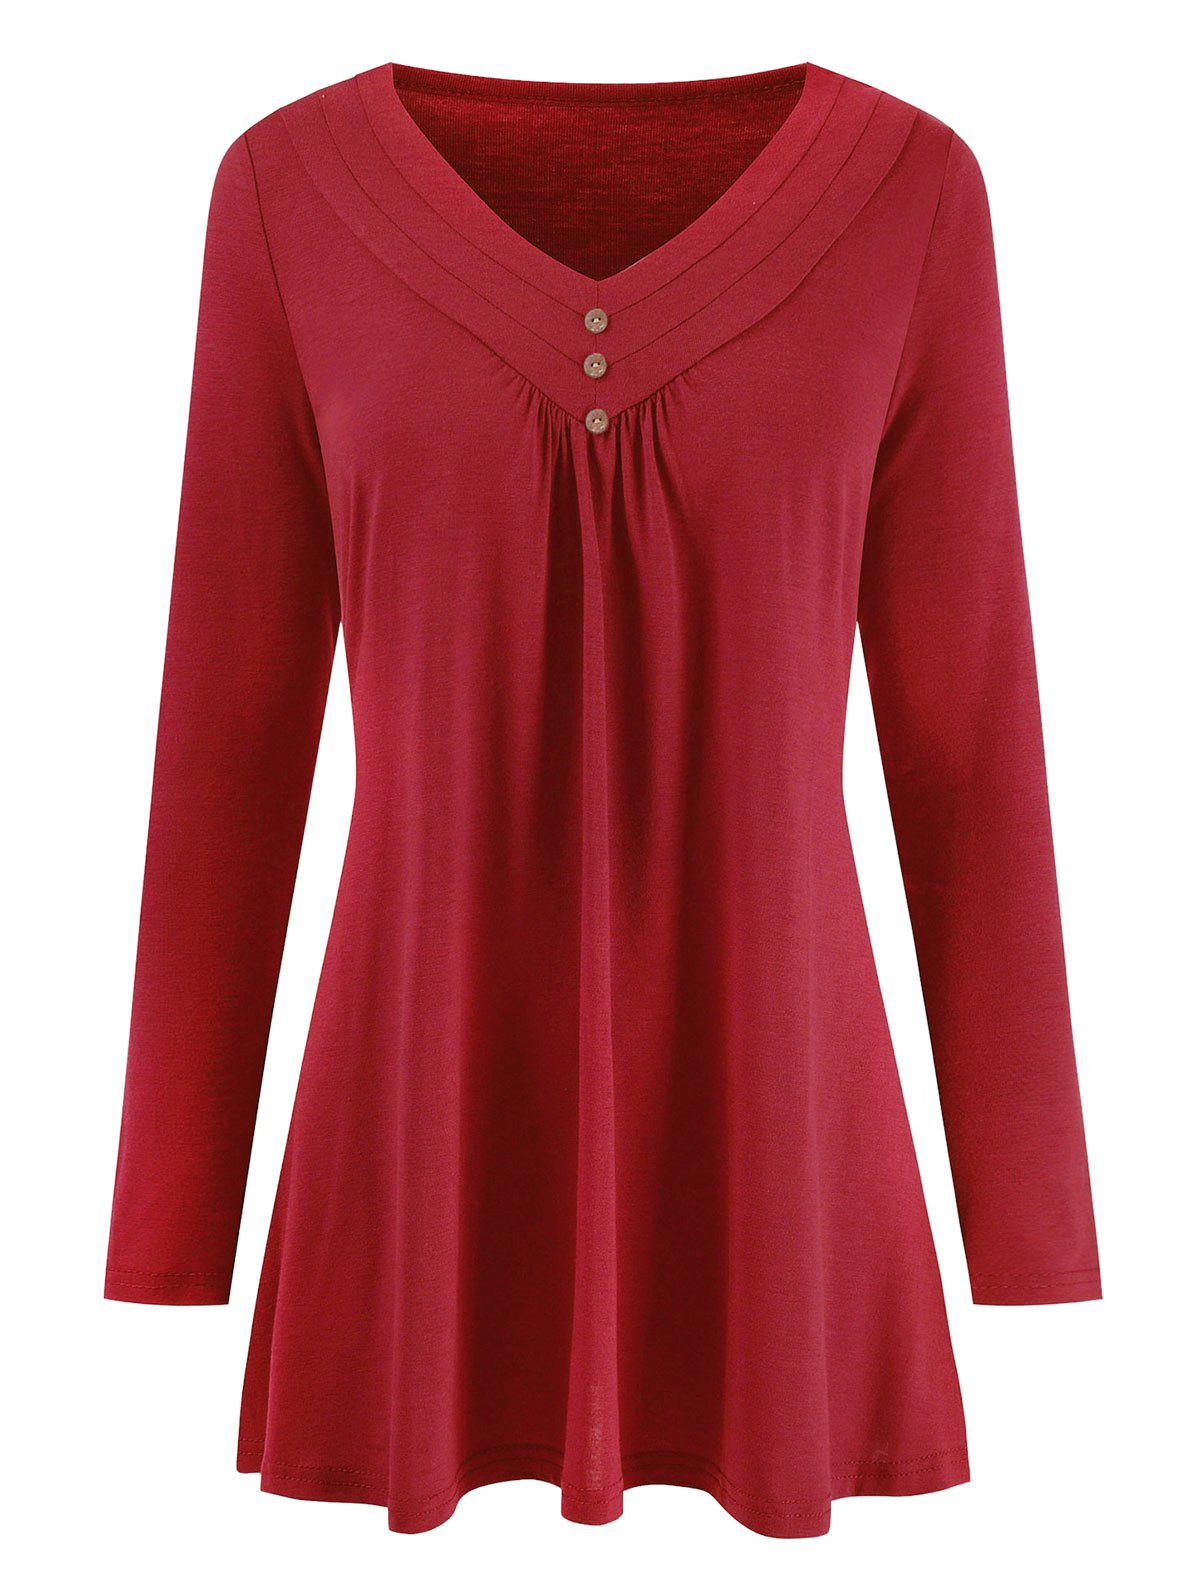 V Neck Plus Size Long Sleeve Top - RED L